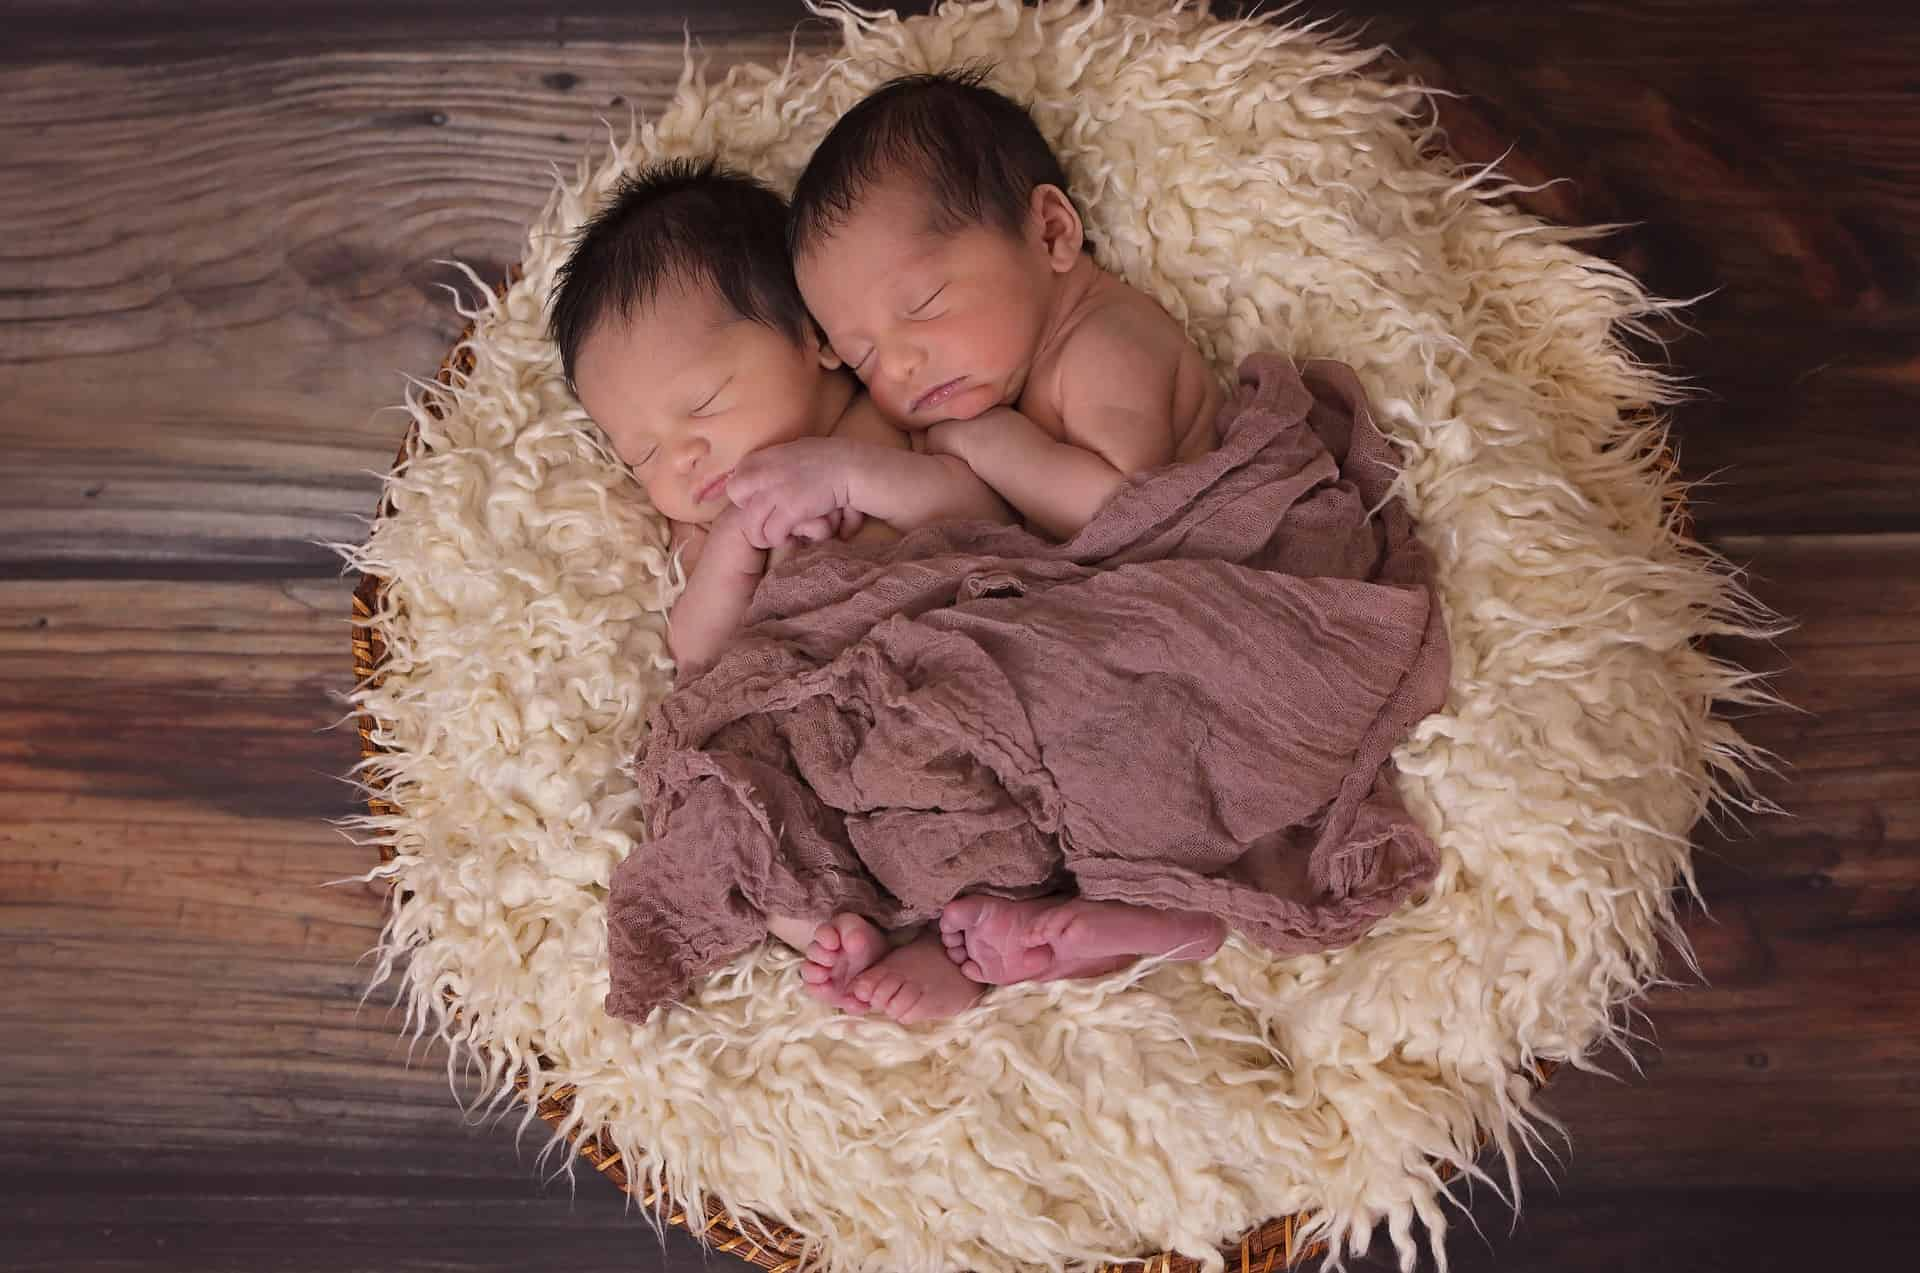 Two identical babies laying down next to each other in a small wool bed on the wooden ground.